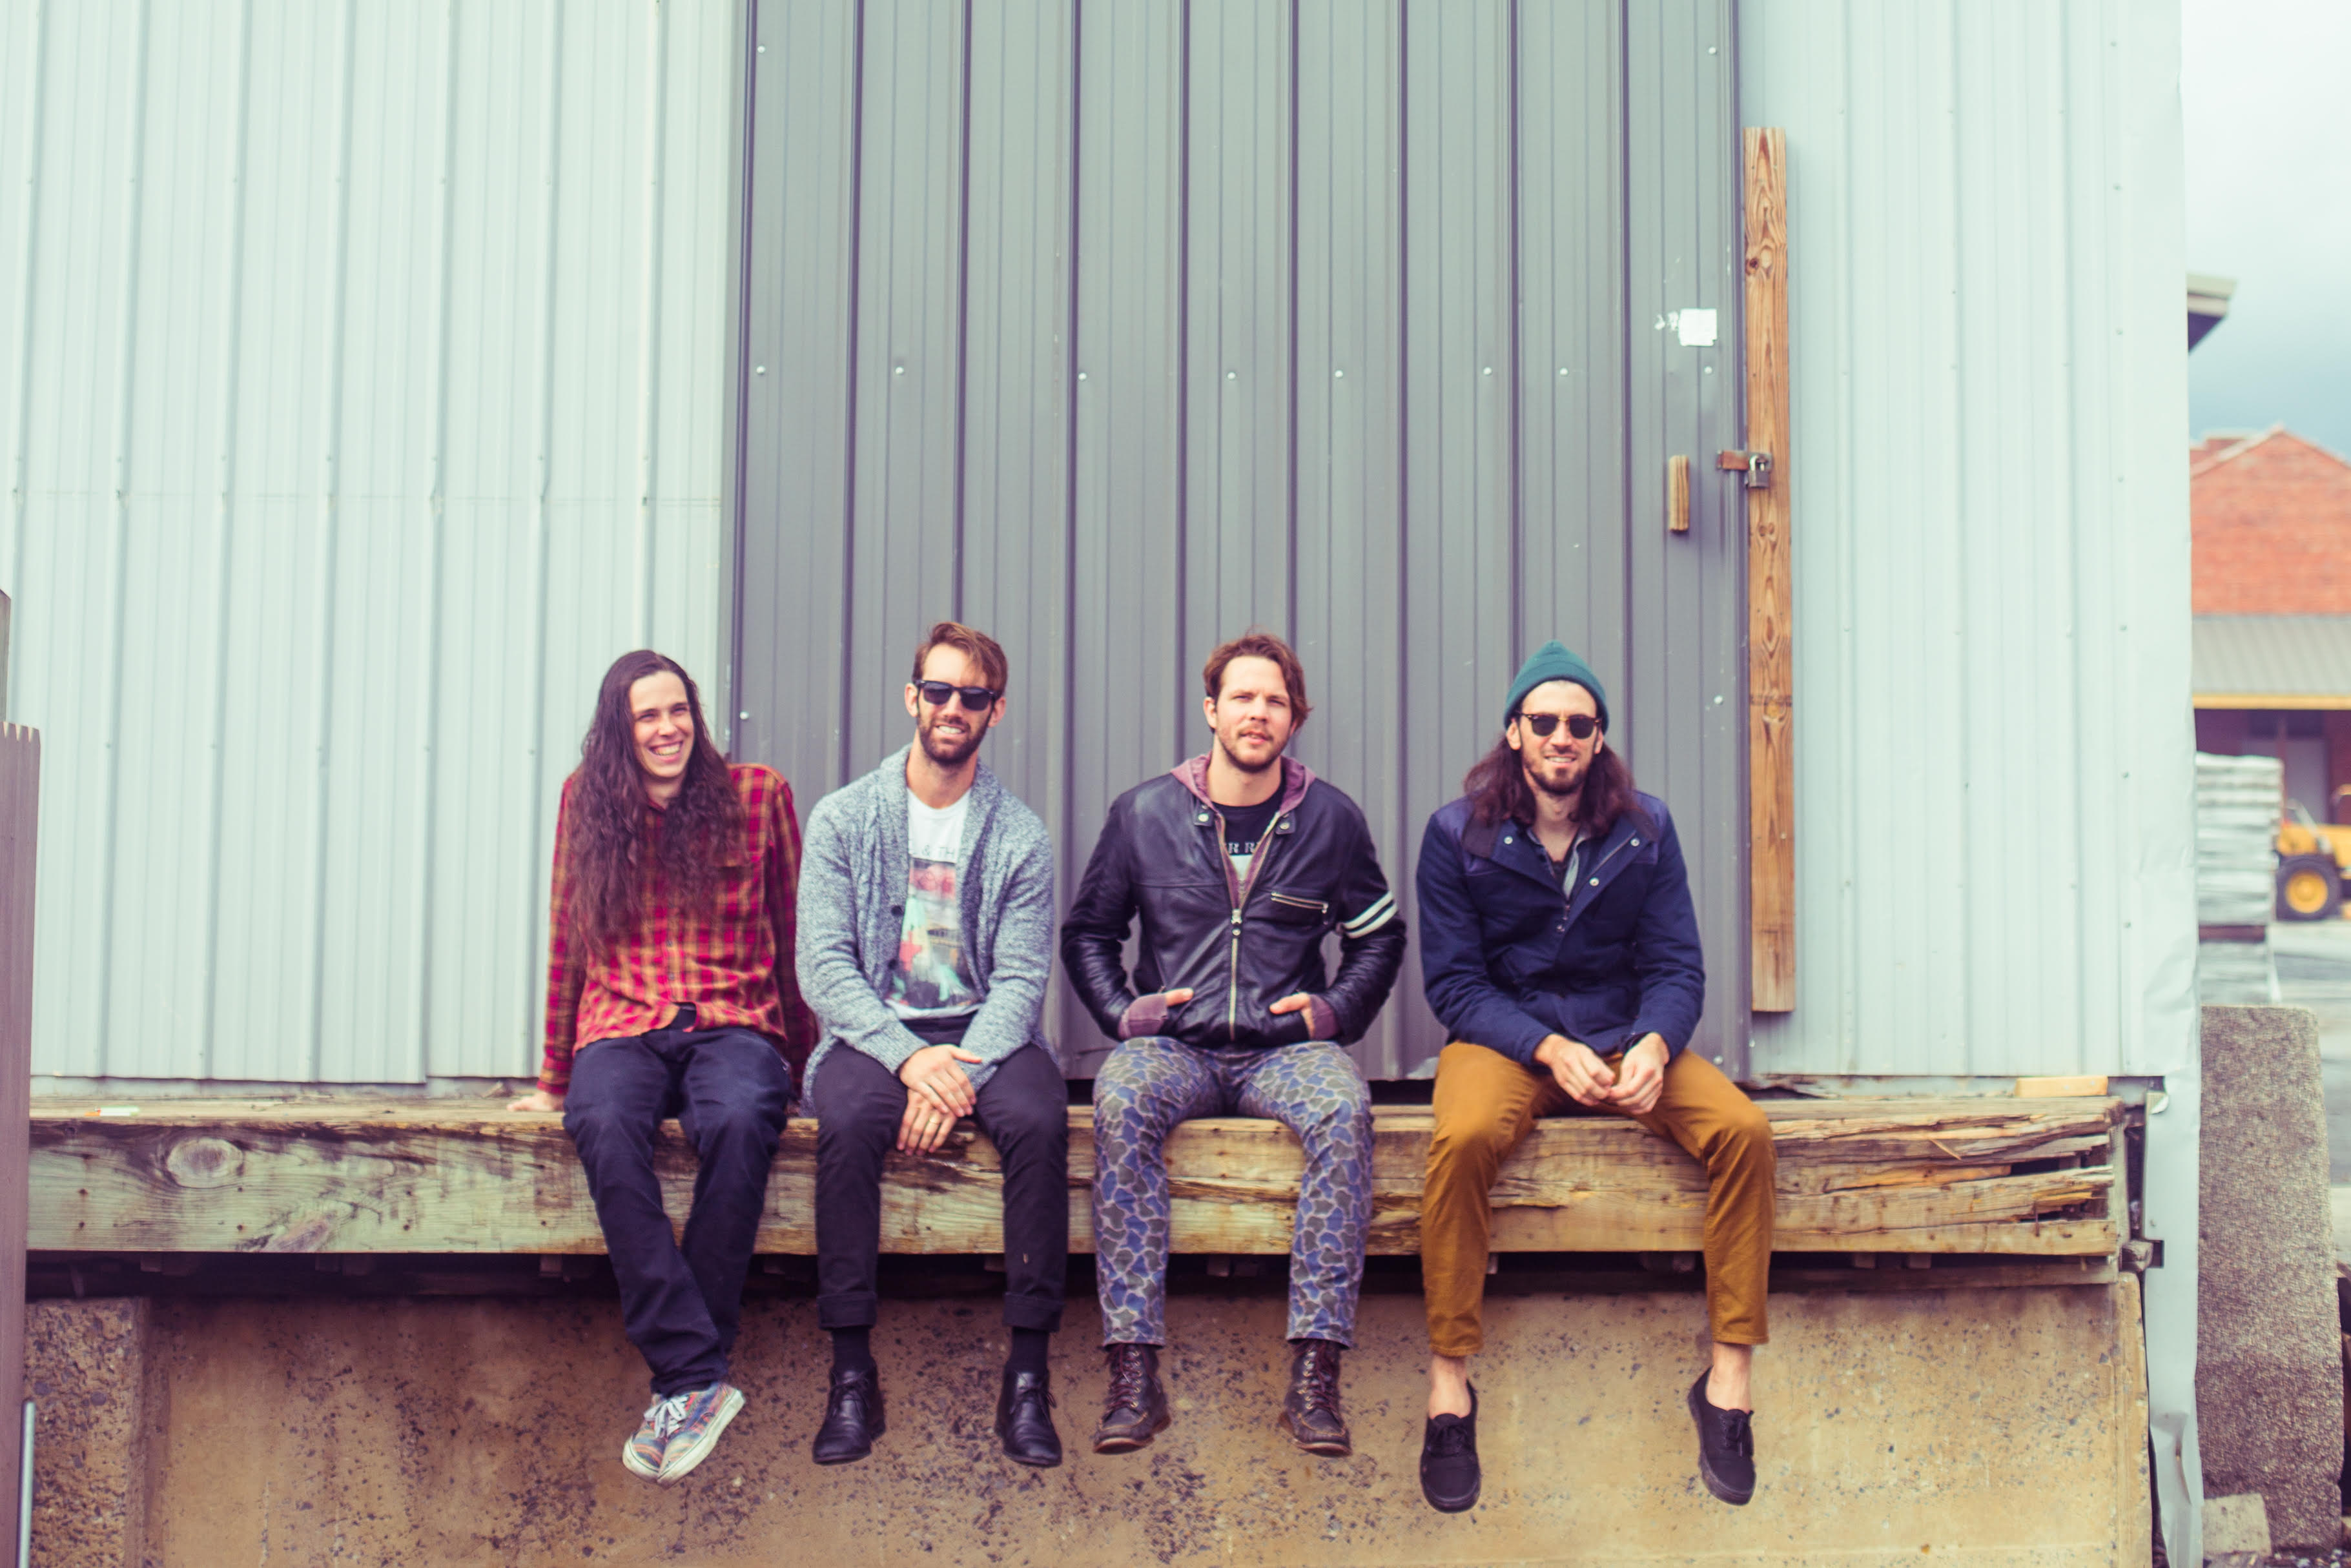 PREMIERE: Mammoth Indigo paint a somber portrait of life on 'Wilt'